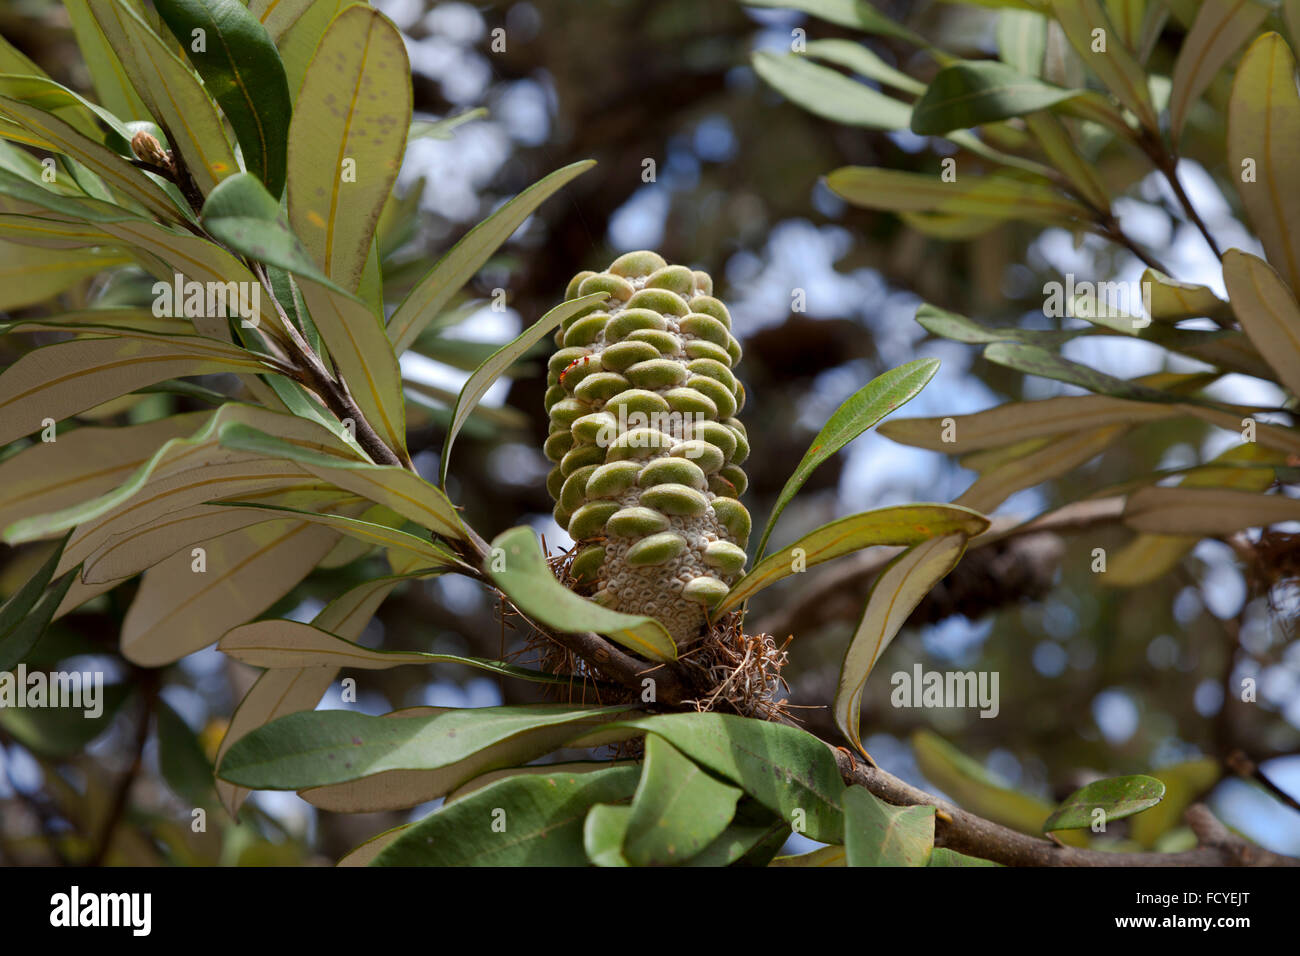 Banksia cone on a tree in New South Wales, Australia - Stock Image